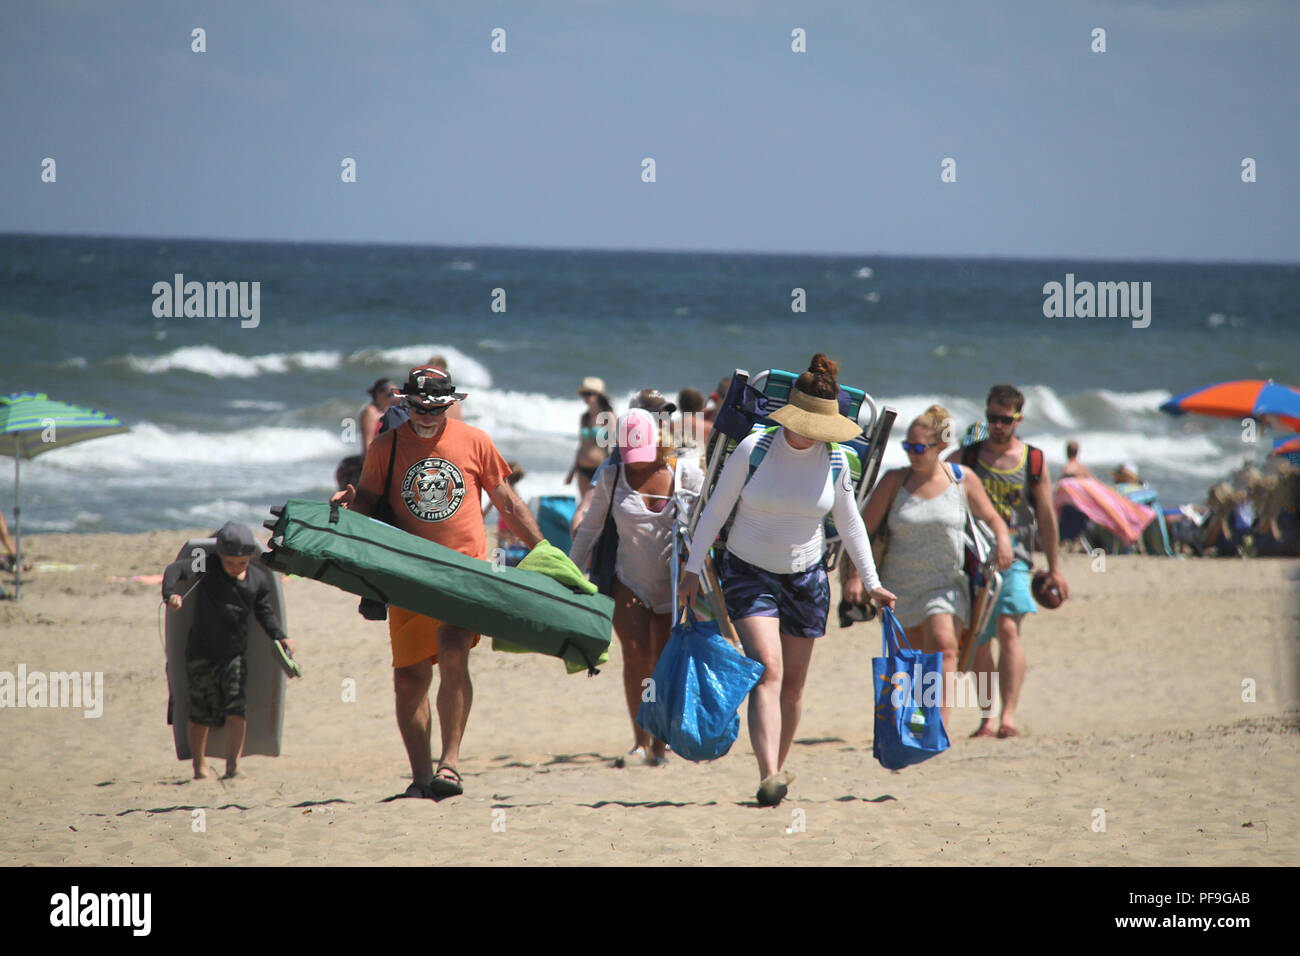 People leaving the beach carrying their items, bags, seats, and floaties - Stock Image